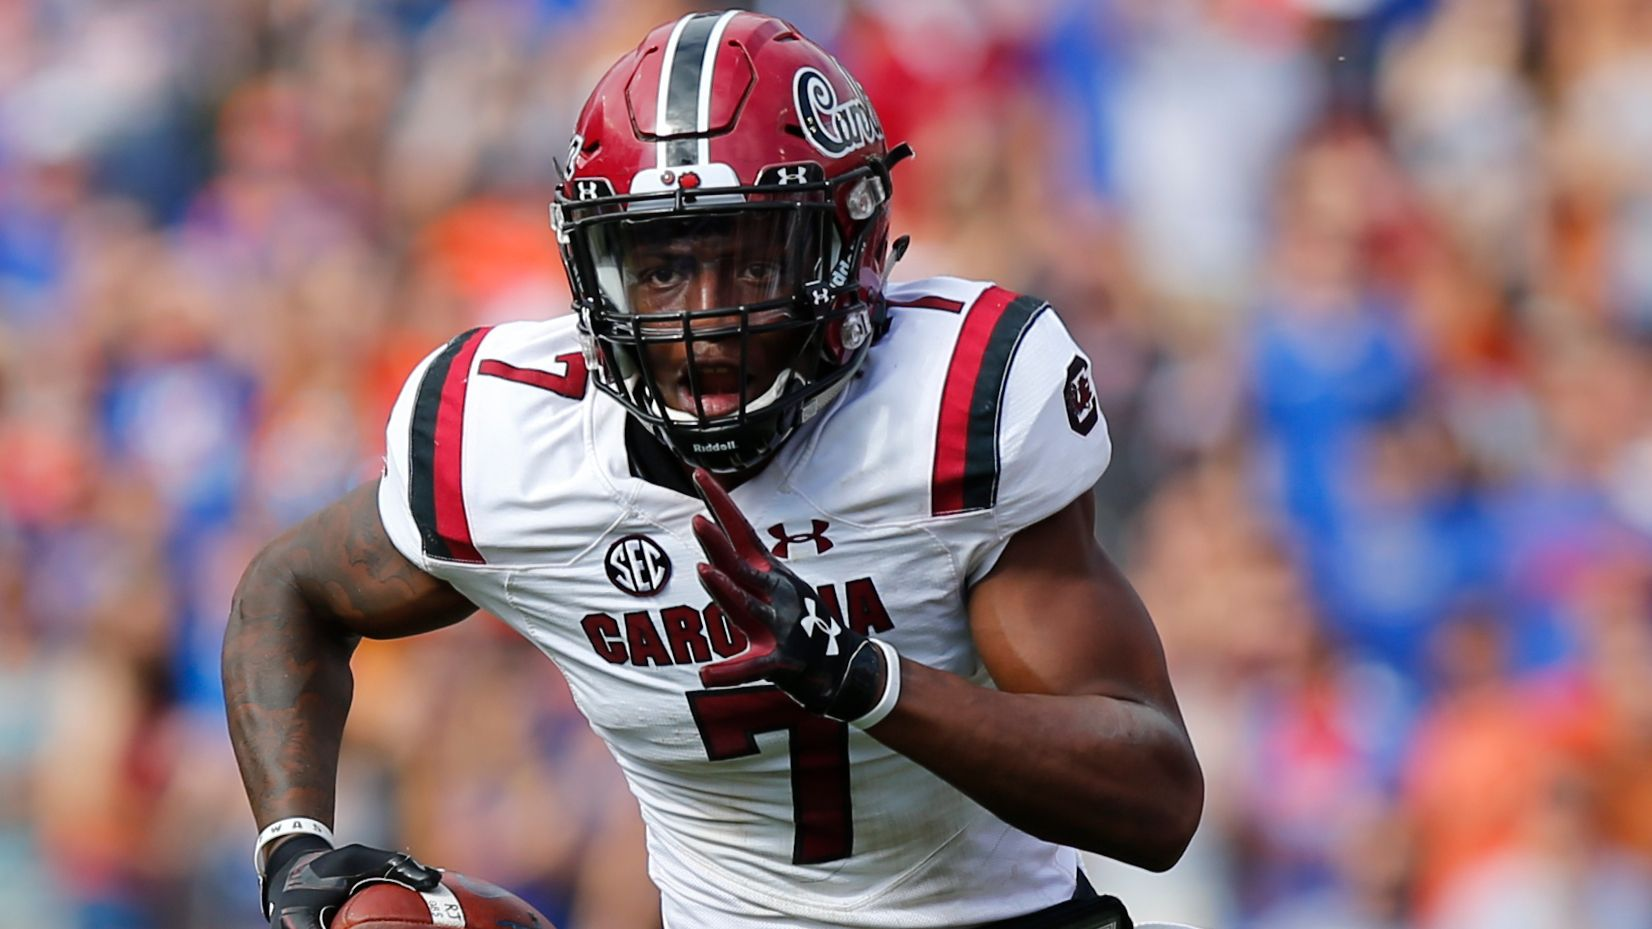 South Carolina Gamecocks defensive back Jaycee Horn (7) runs with the ball during the game between the South Carolina Gamecocks and the Florida Gators on November 10, 2018 at Ben Hill Griffin Stadium at Florida Field in Gainesville, Fl.